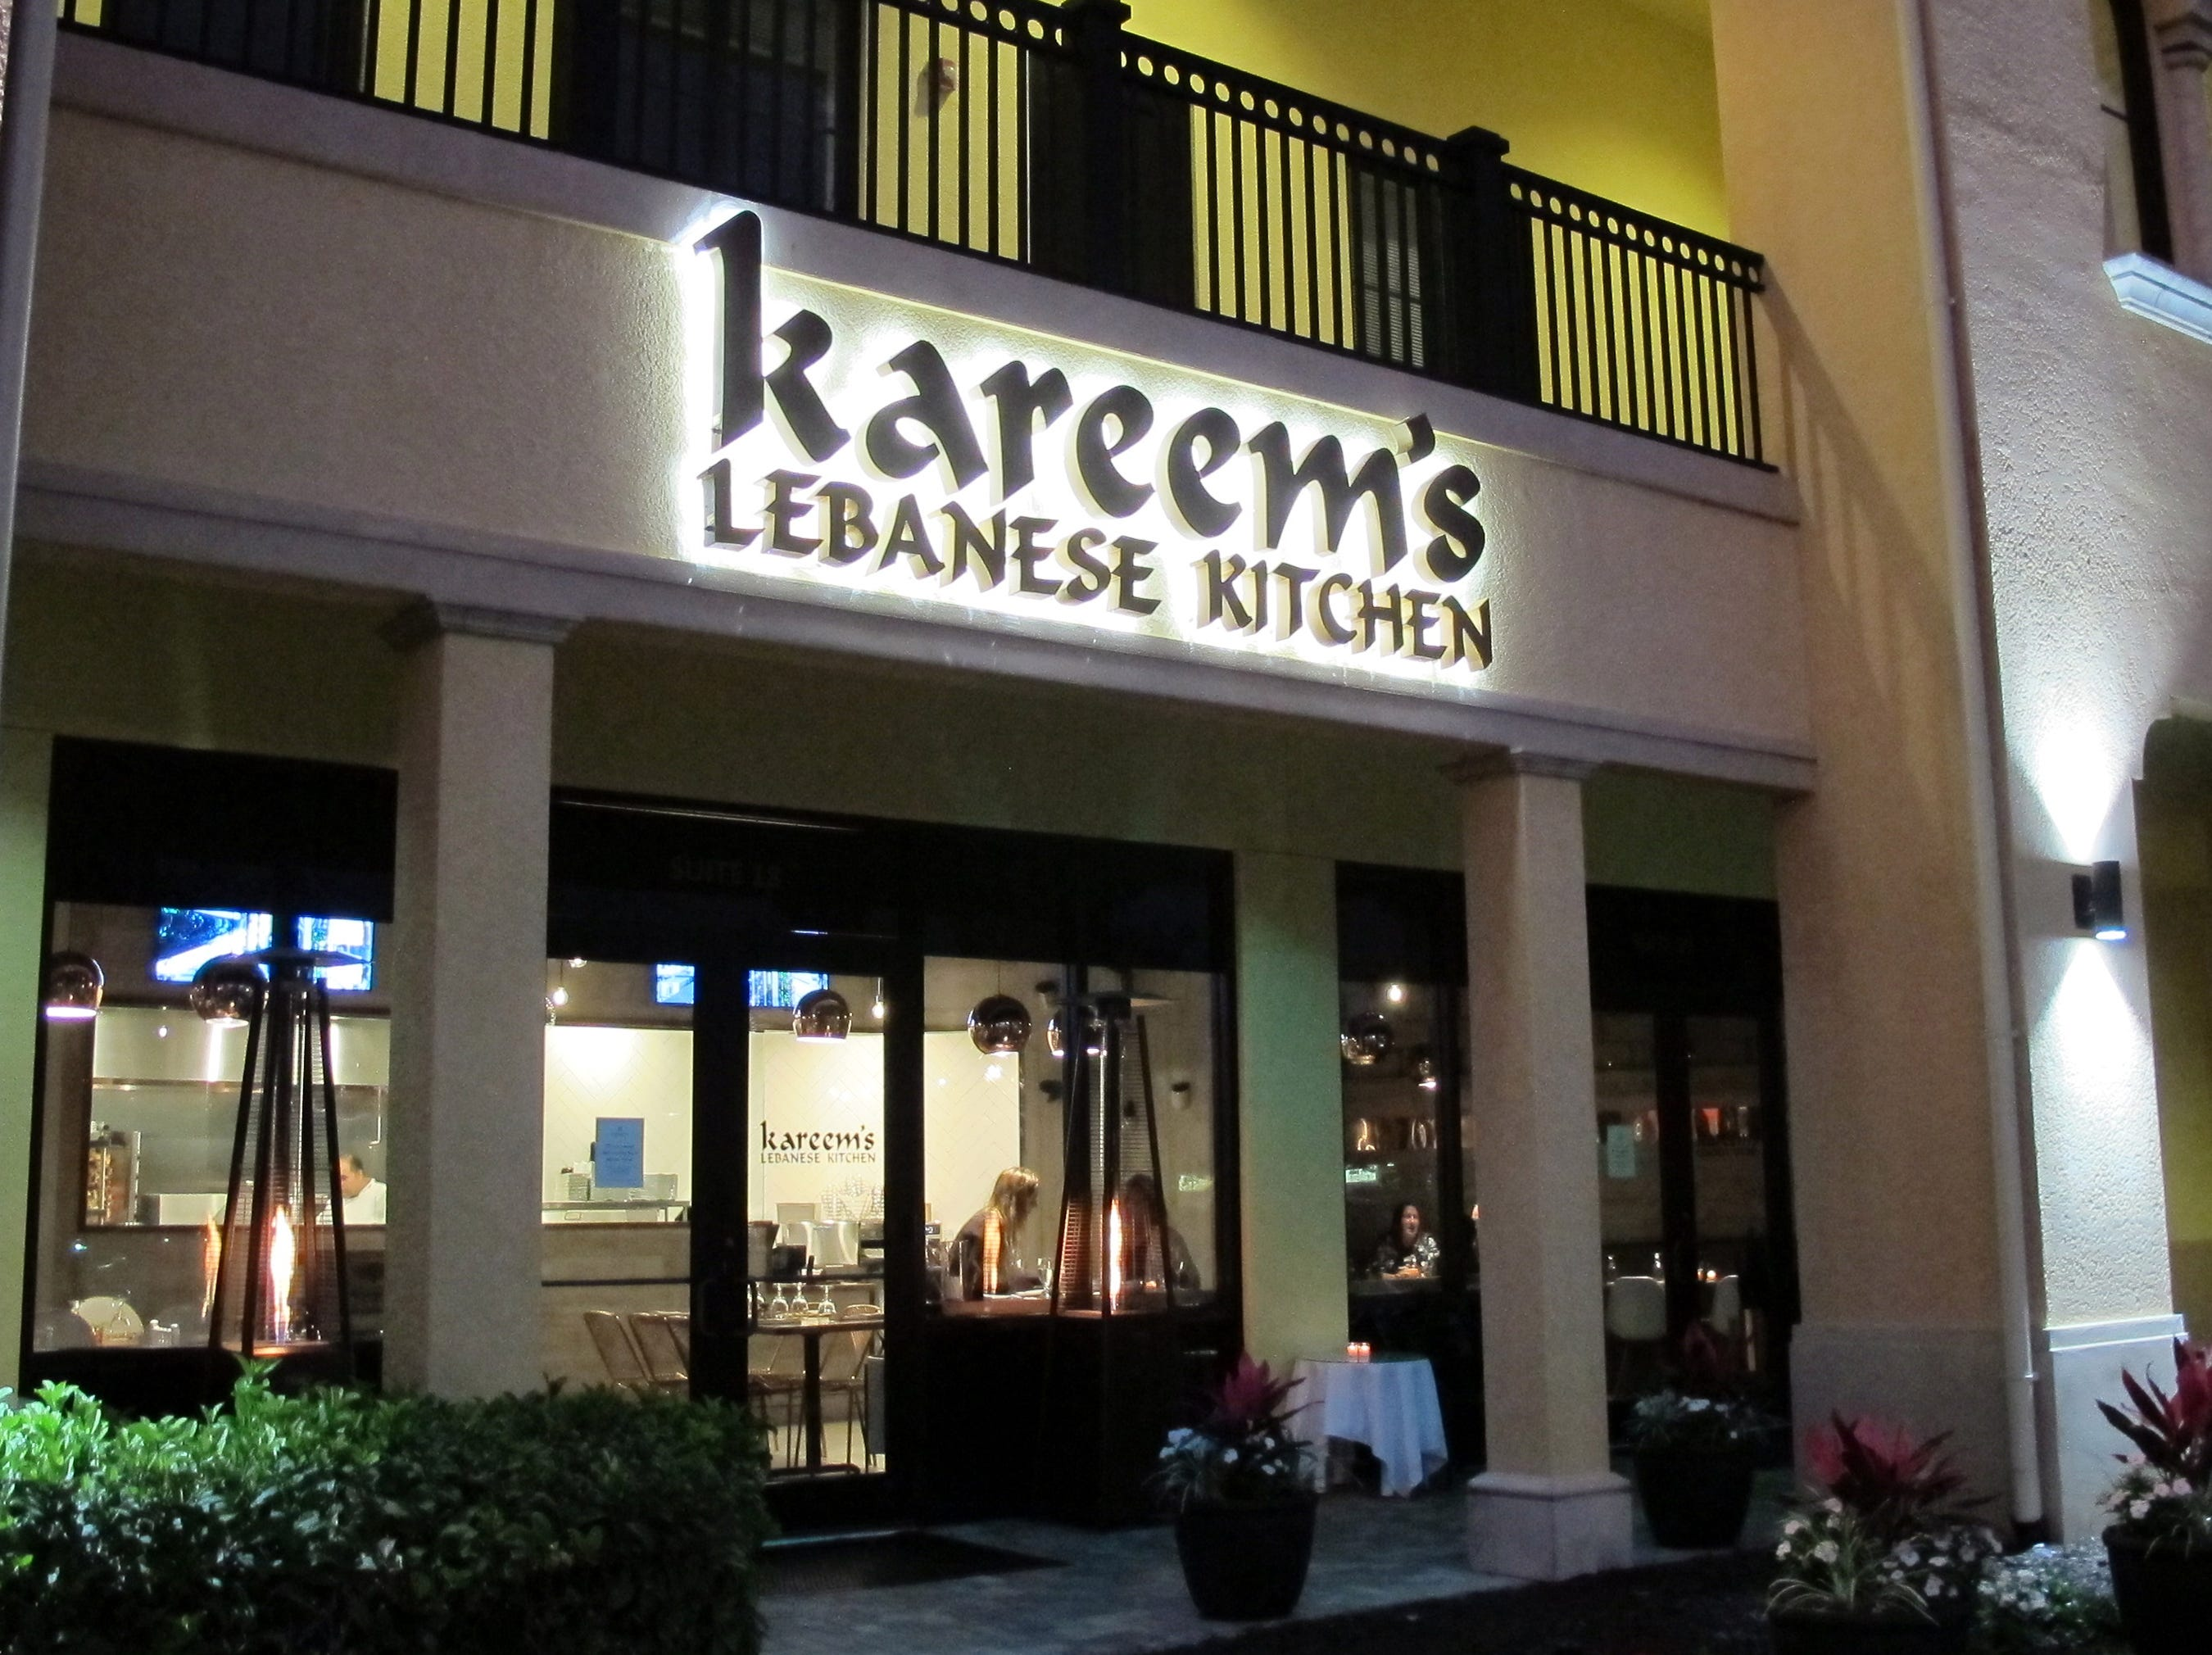 Kareem's Lebanese Kitchen launched in February 2018 next to 21 Spices in Sugden Park Plaza off U.S. 41 East in East Naples.